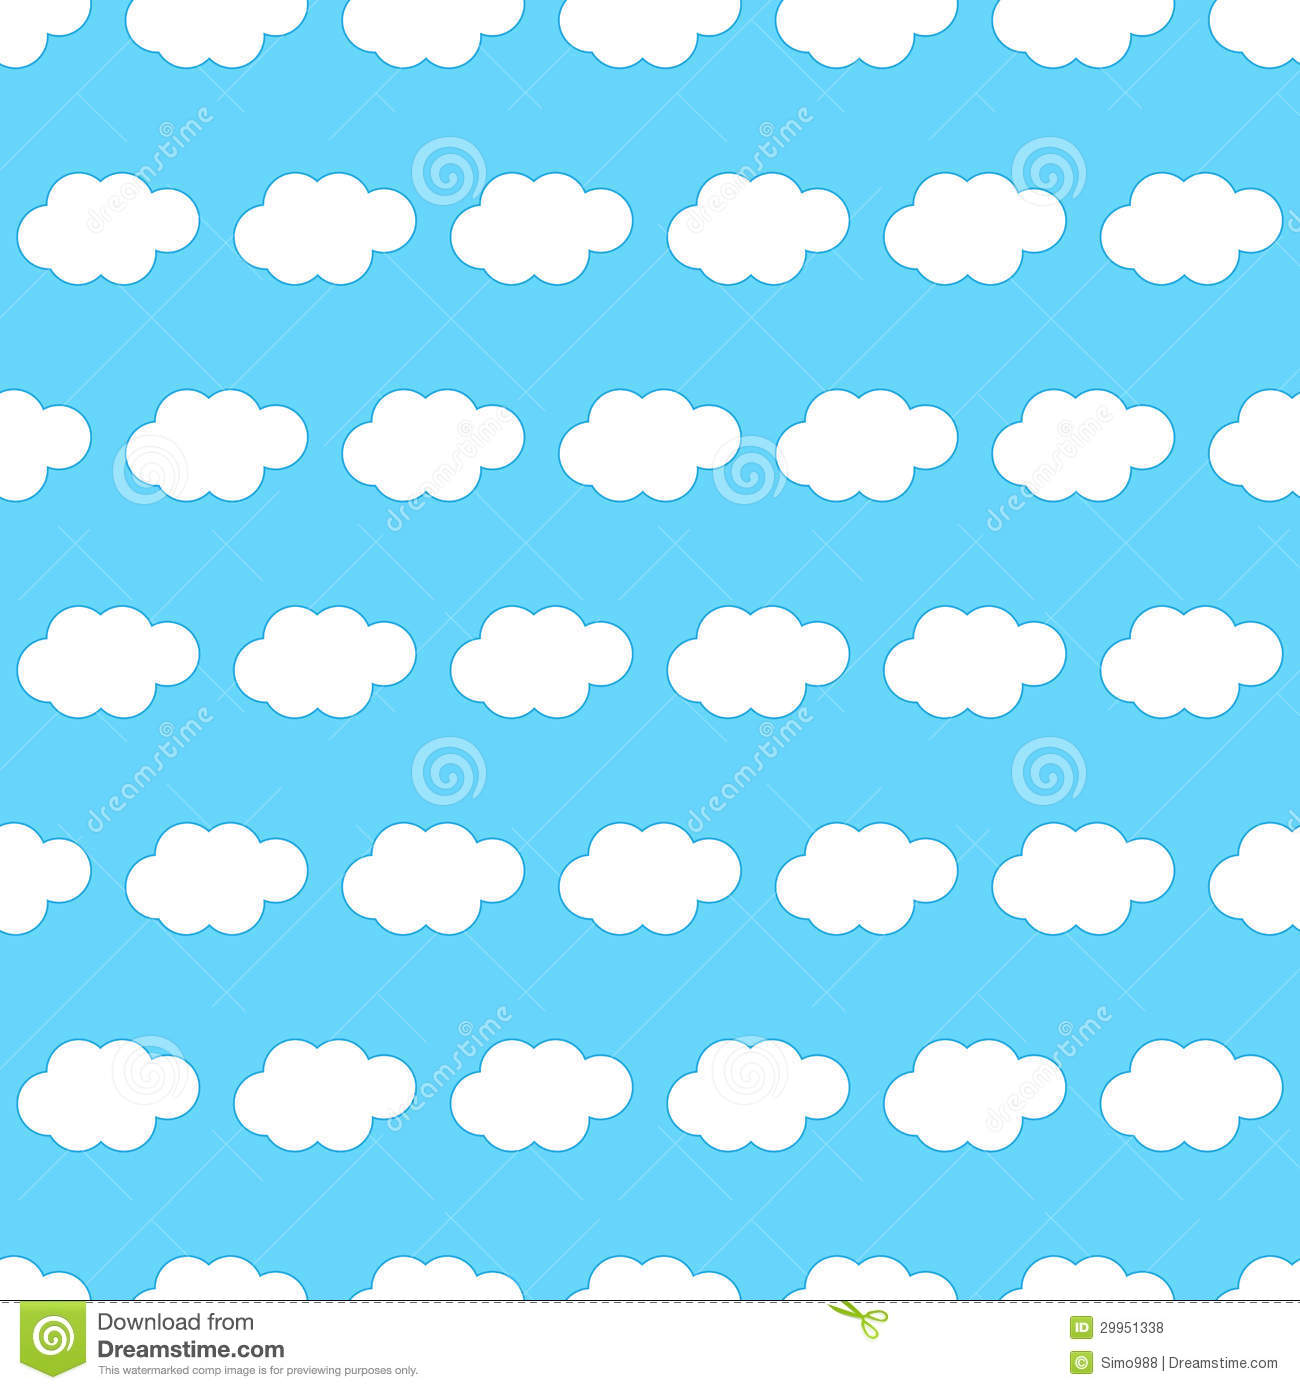 Cloud Seamless Background Royalty Free Stock Photos.